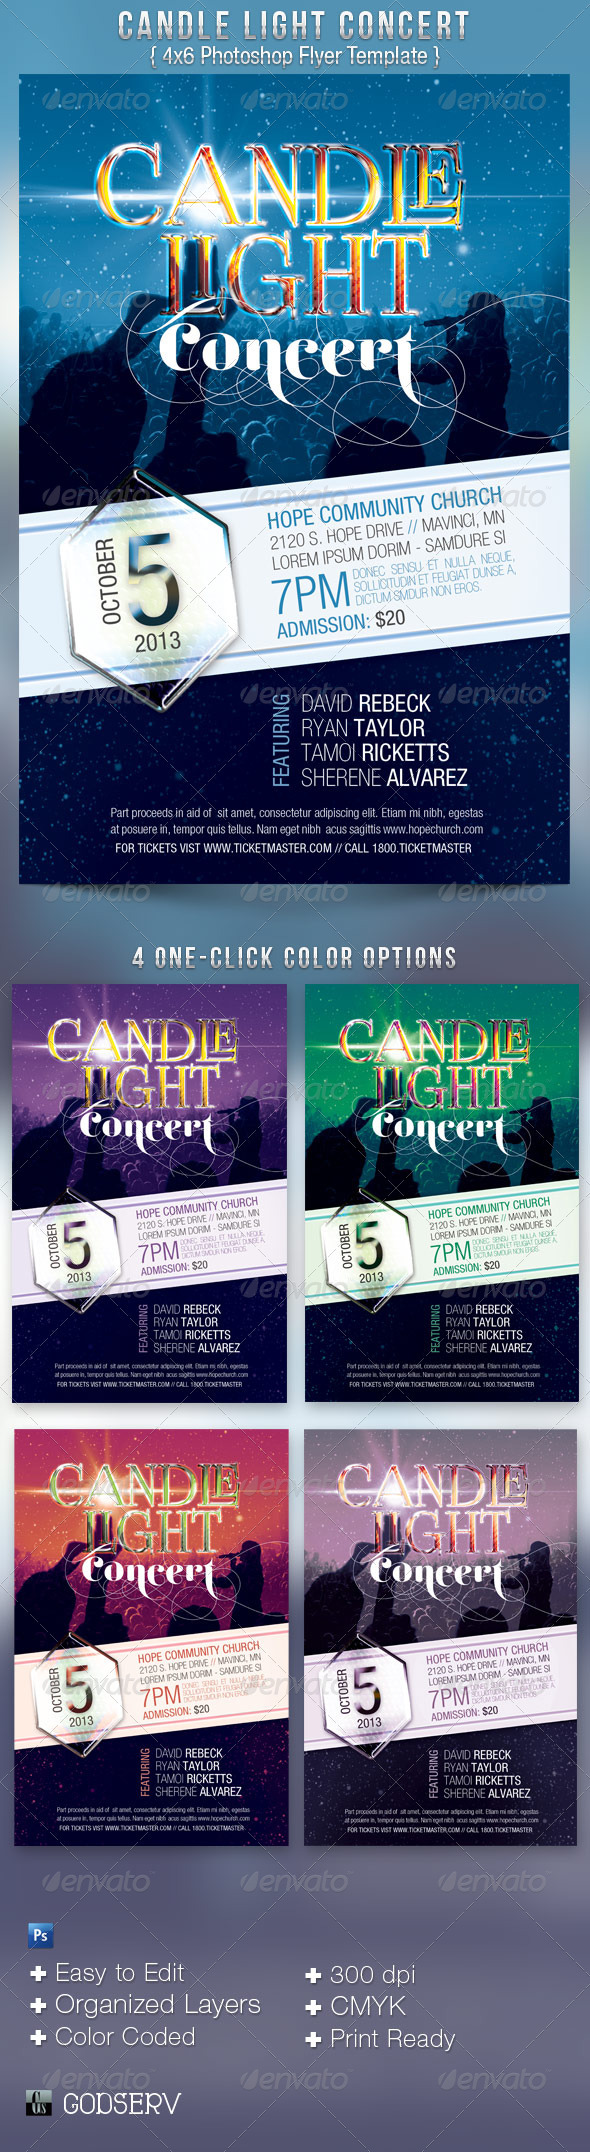 Candle Light Concert Flyer Templates - Church Flyers